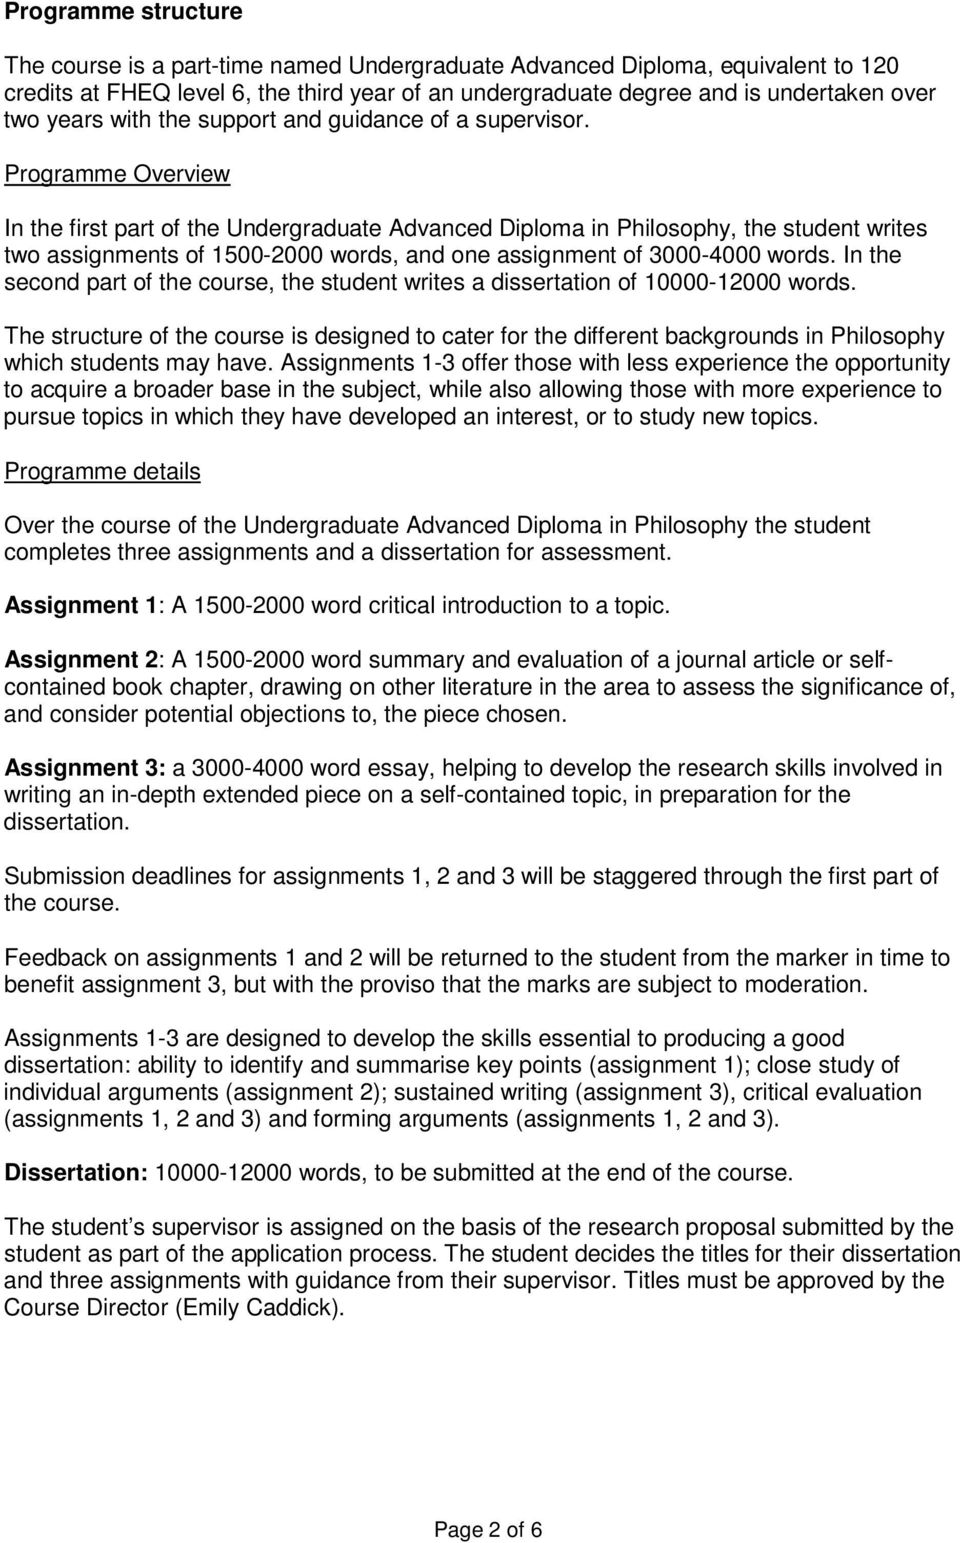 Programme Overview In the first part of the Undergraduate Advanced Diploma in Philosophy, the student writes two assignments of 1500-2000 words, and one assignment of 3000-4000 words.